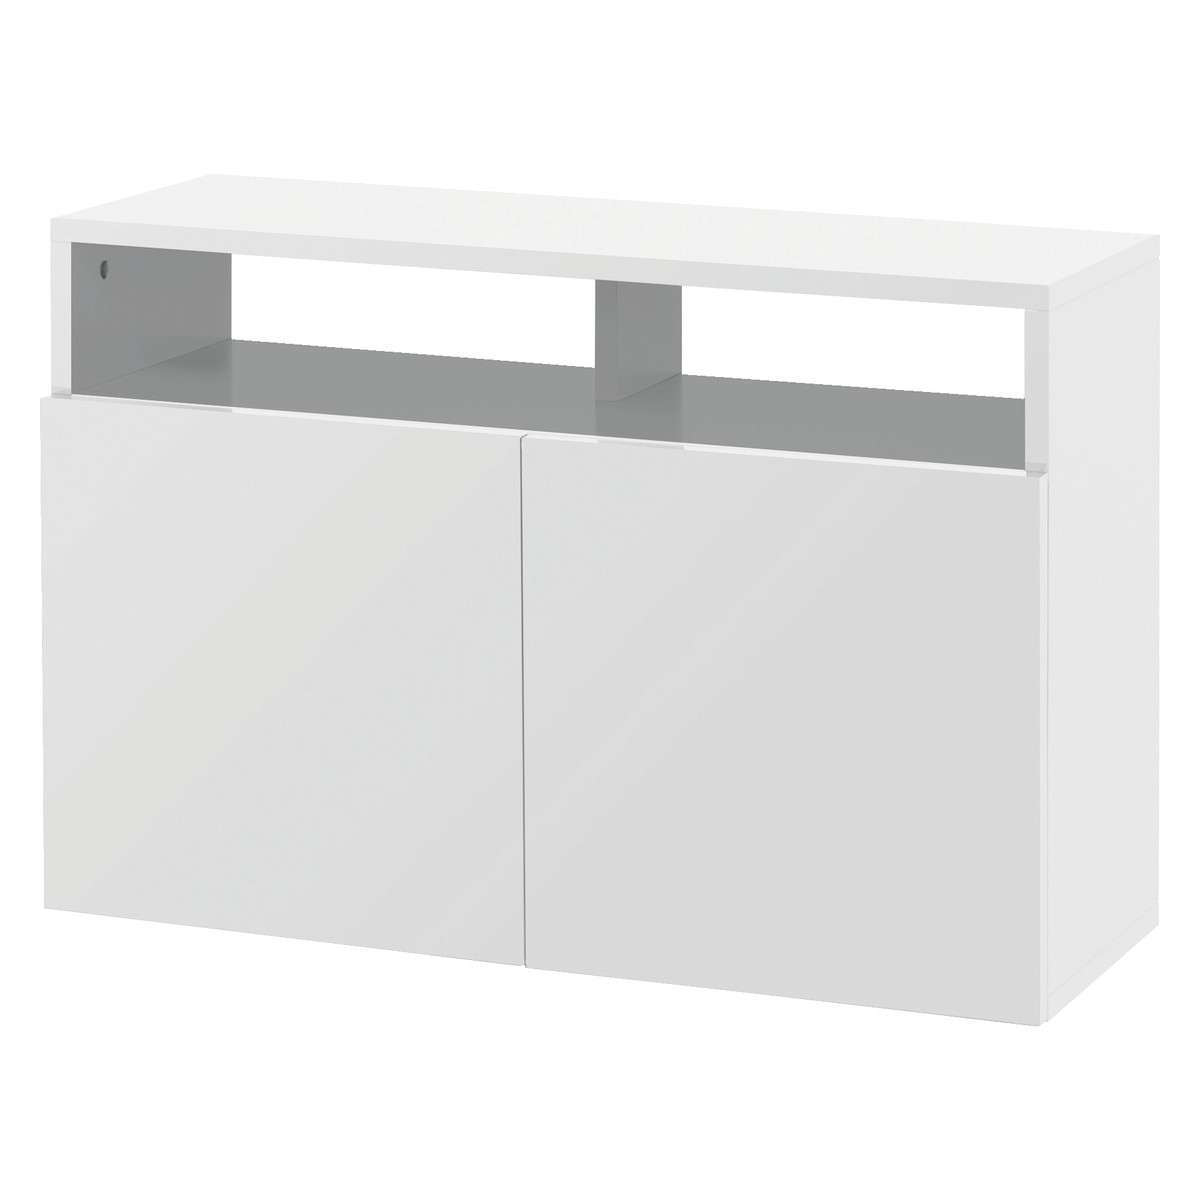 Kubrik White High Gloss Small Sideboard | Buy Now At Habitat Uk Within White High Gloss Sideboards (View 7 of 20)